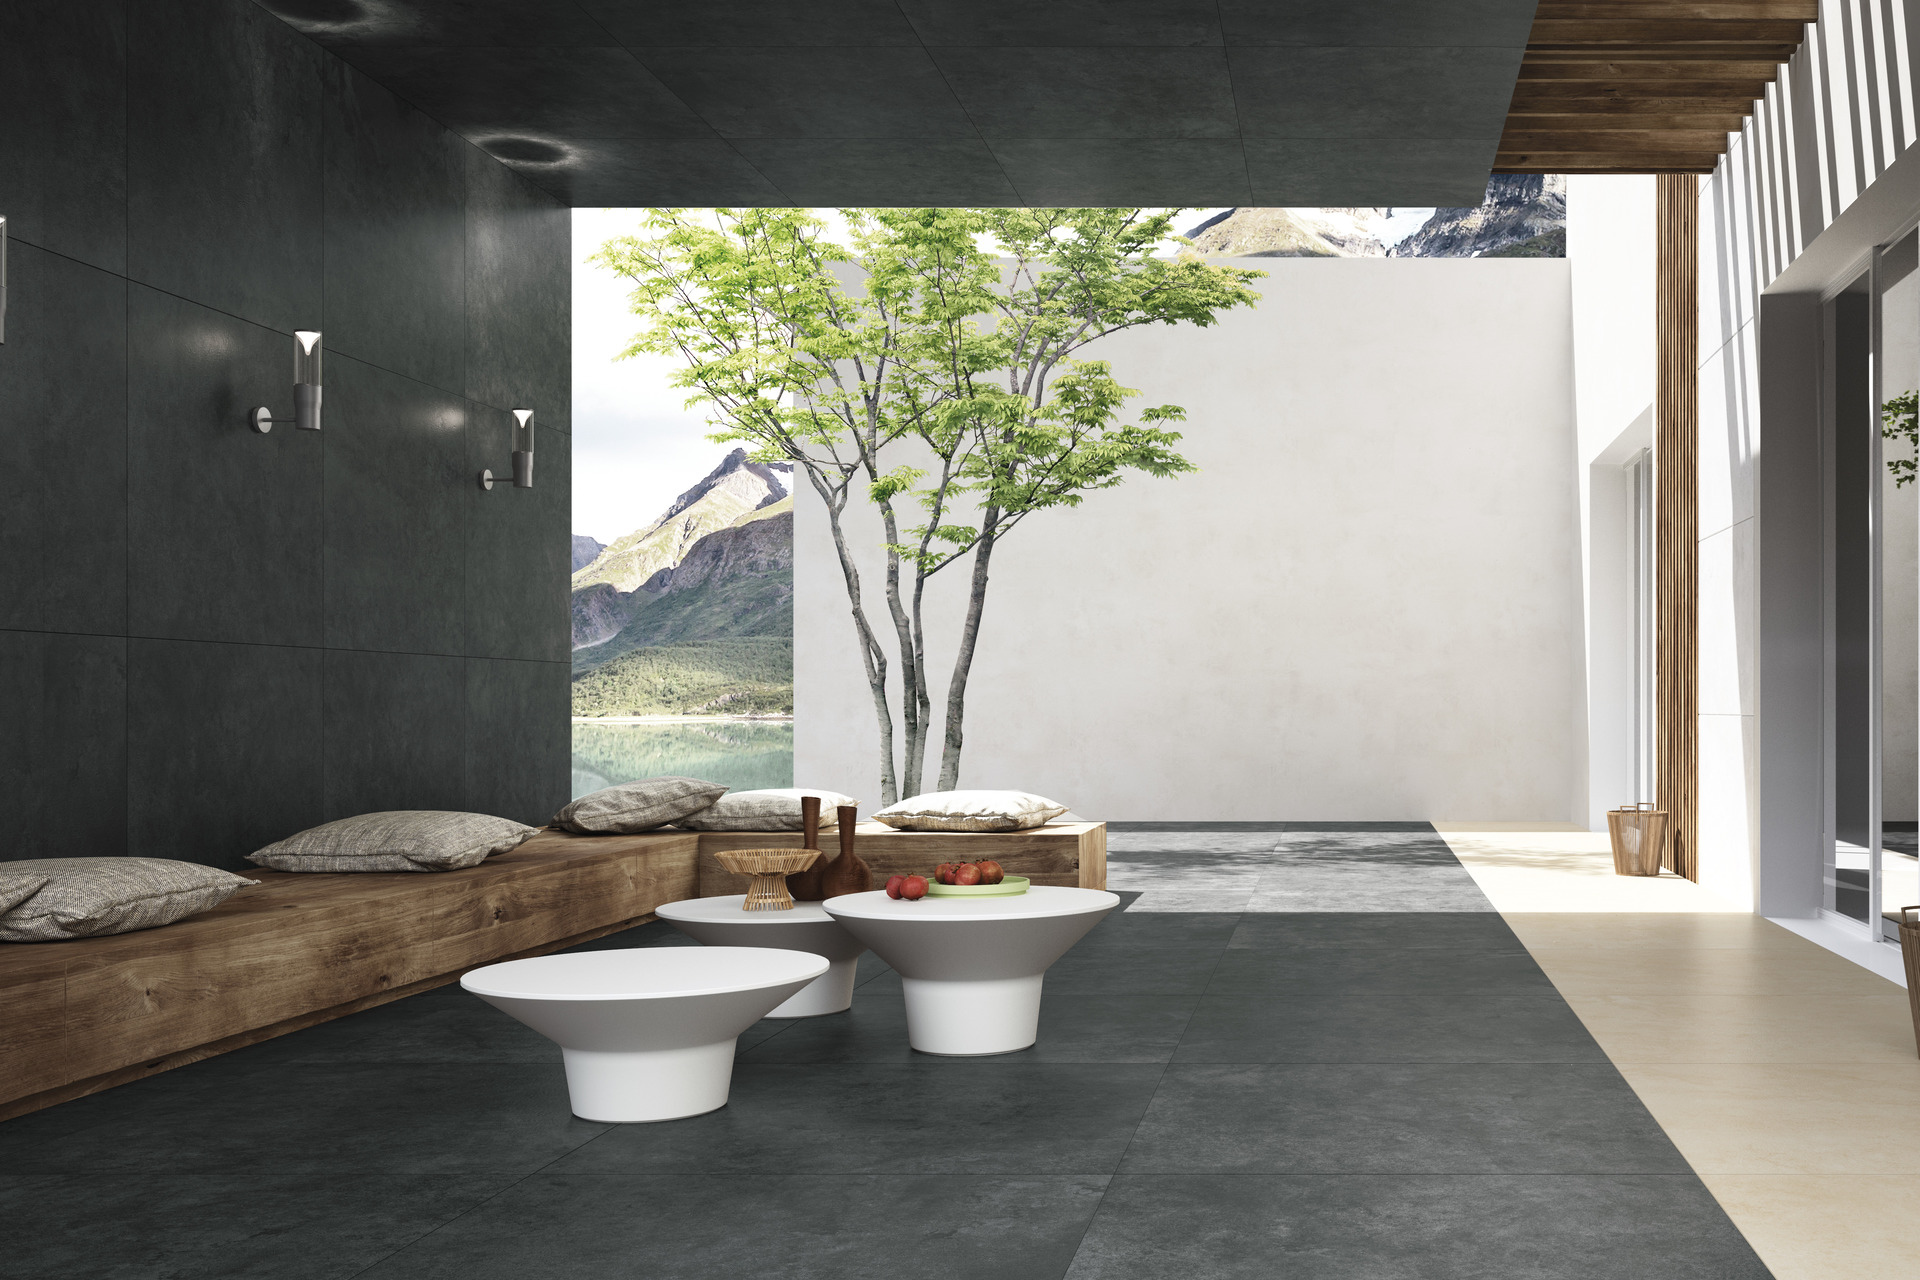 Stone Effect Porcelain Tiles - Quietstones Maximum